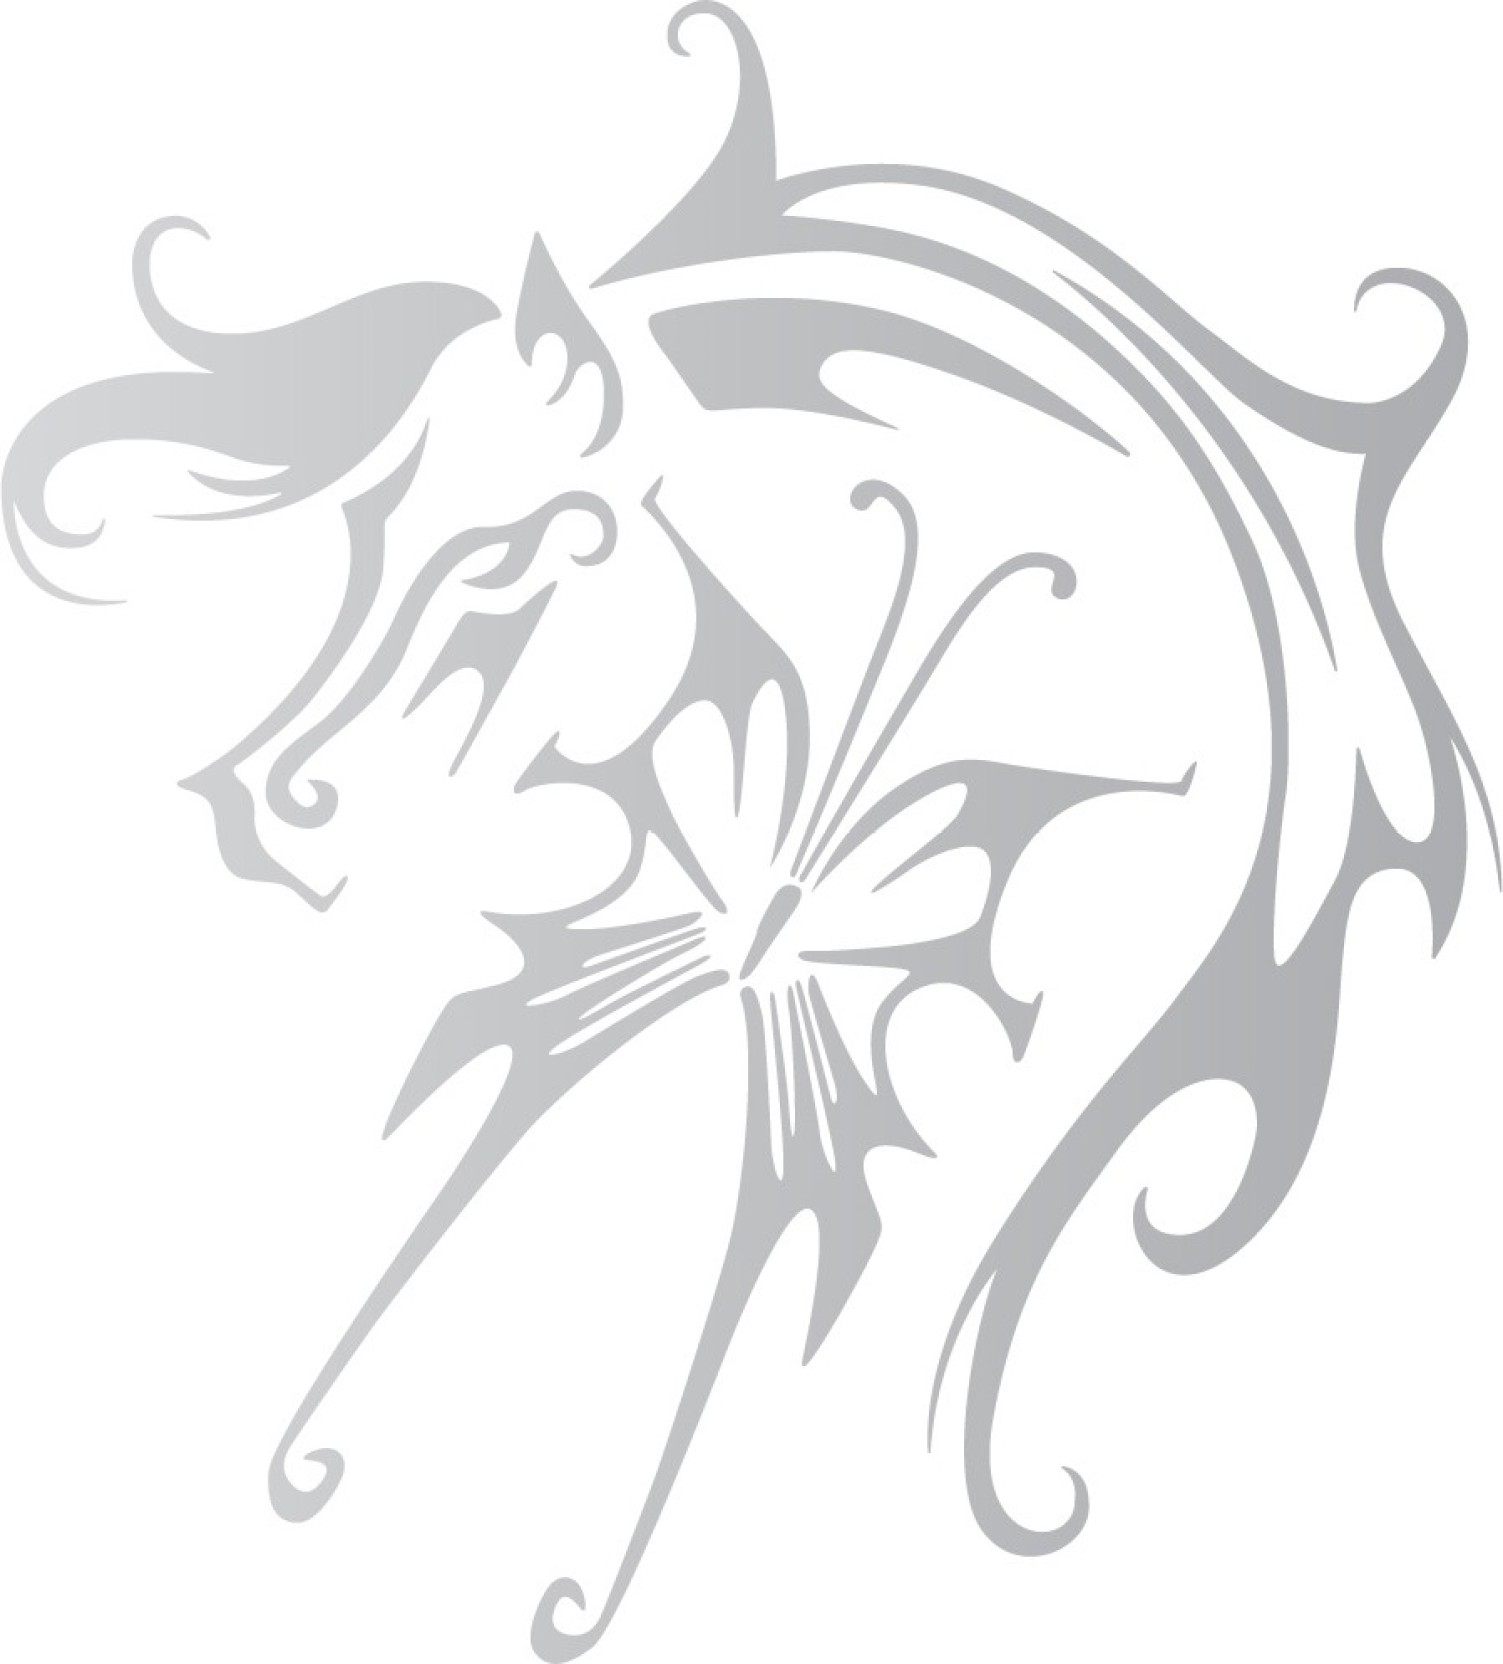 Wall design bike graphics stickers fly like a horse silver colour reflective vinyl motorcycle design sticker pack of 1